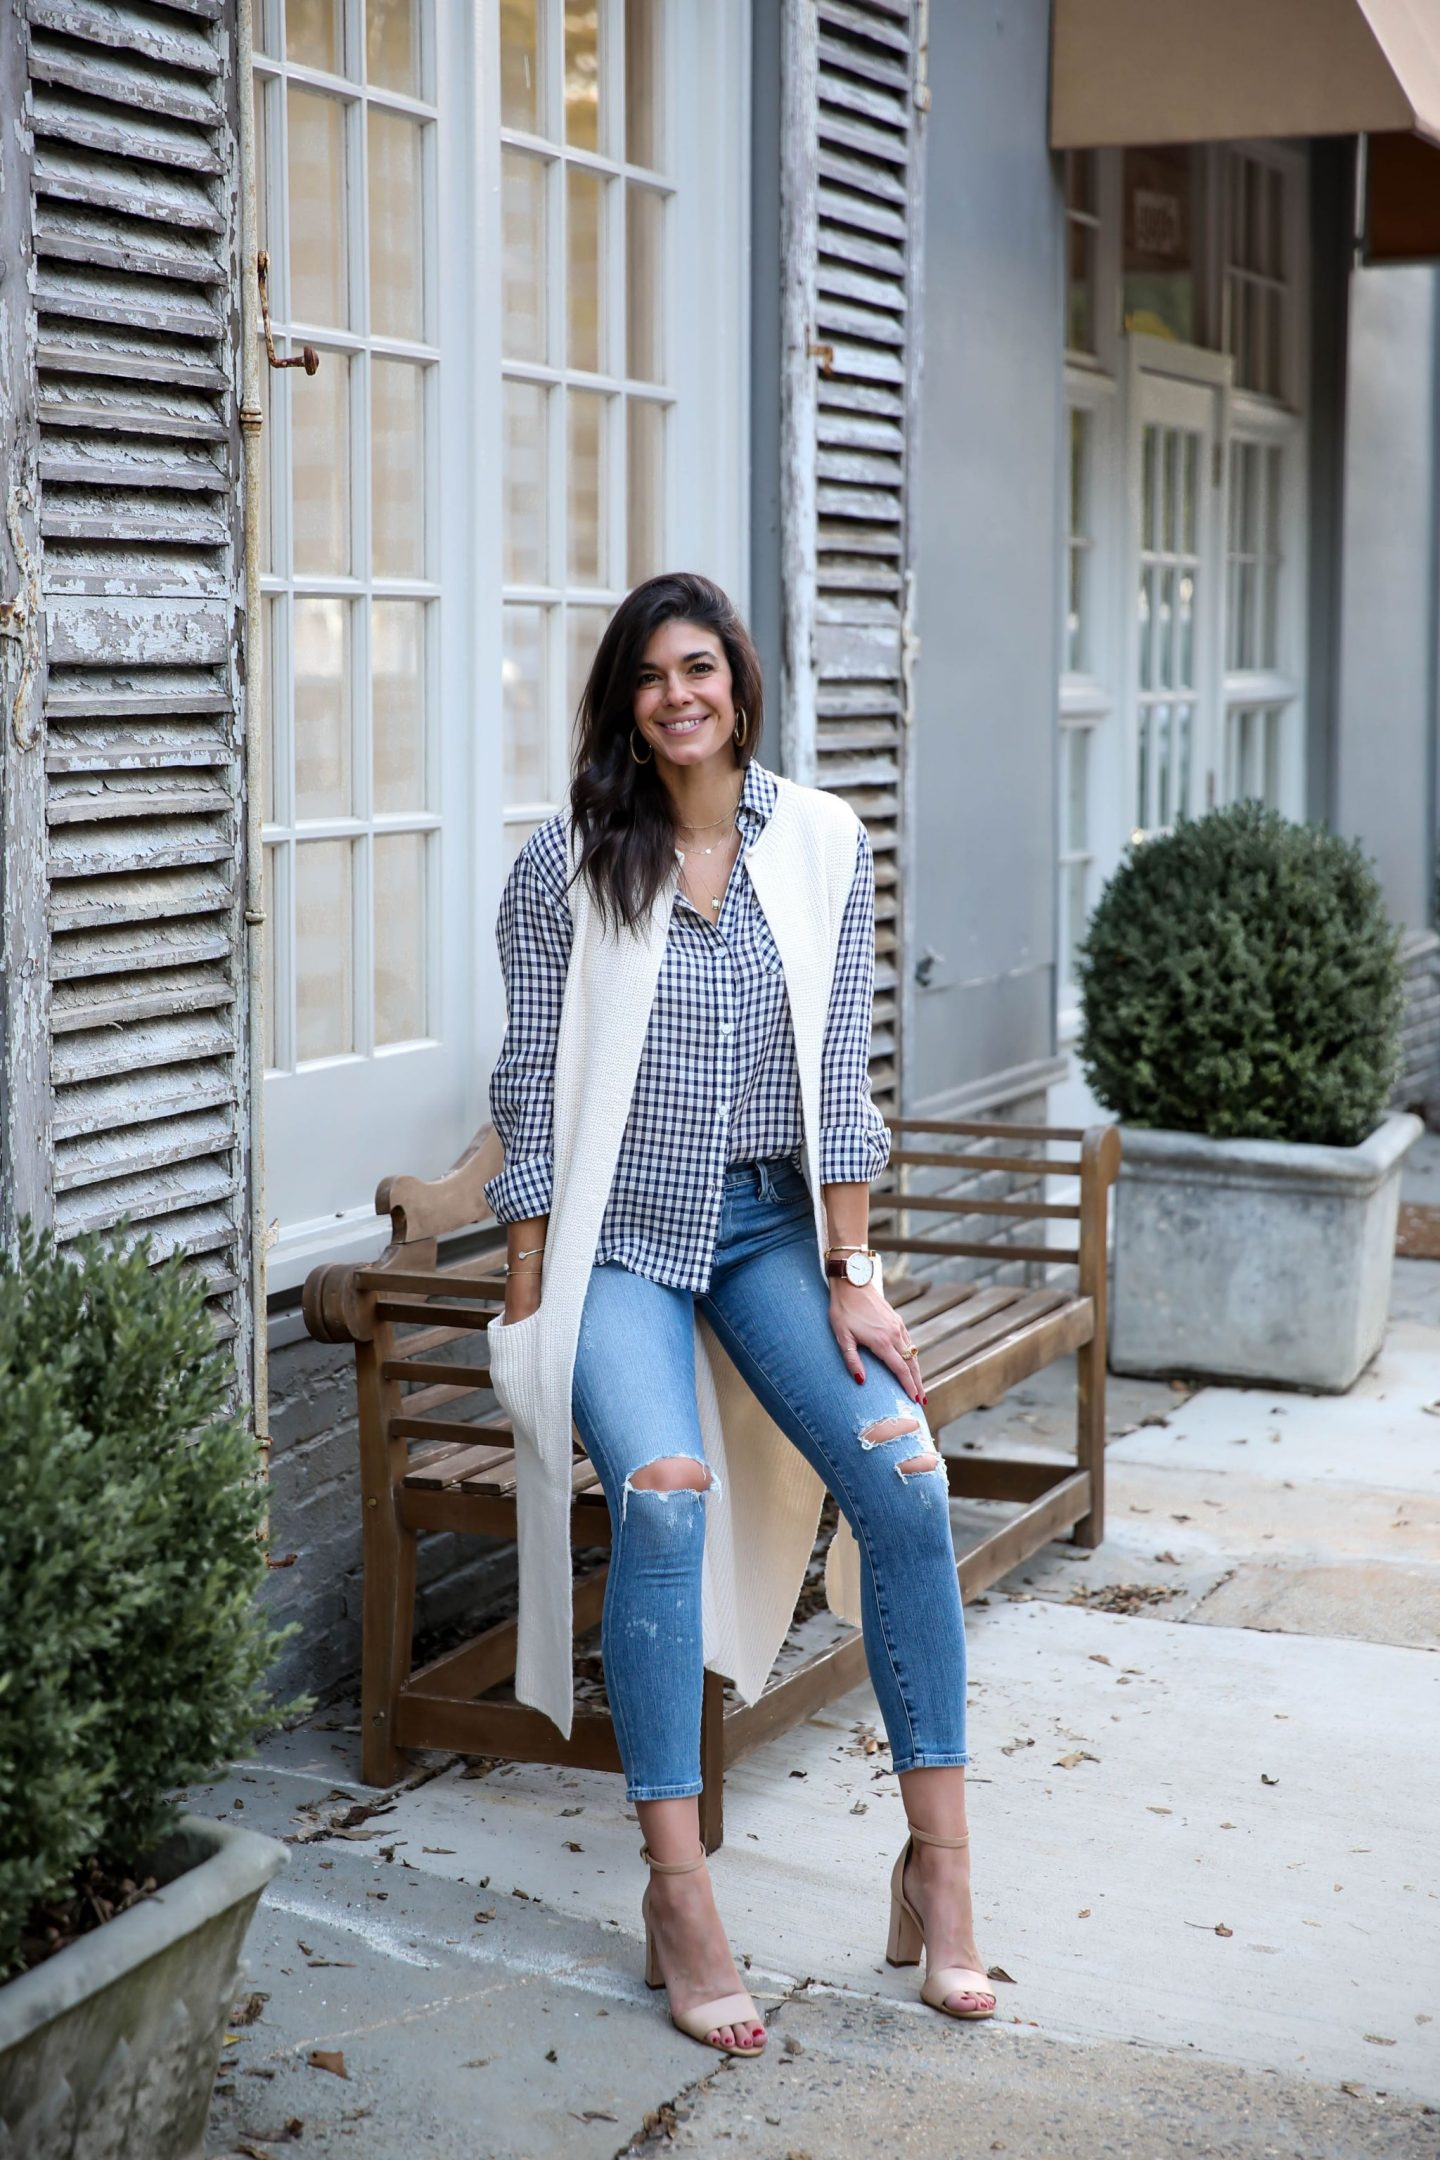 fall layers - checked button down - duster sweater vest - skinny jeans - Lauren schwaiger style blog